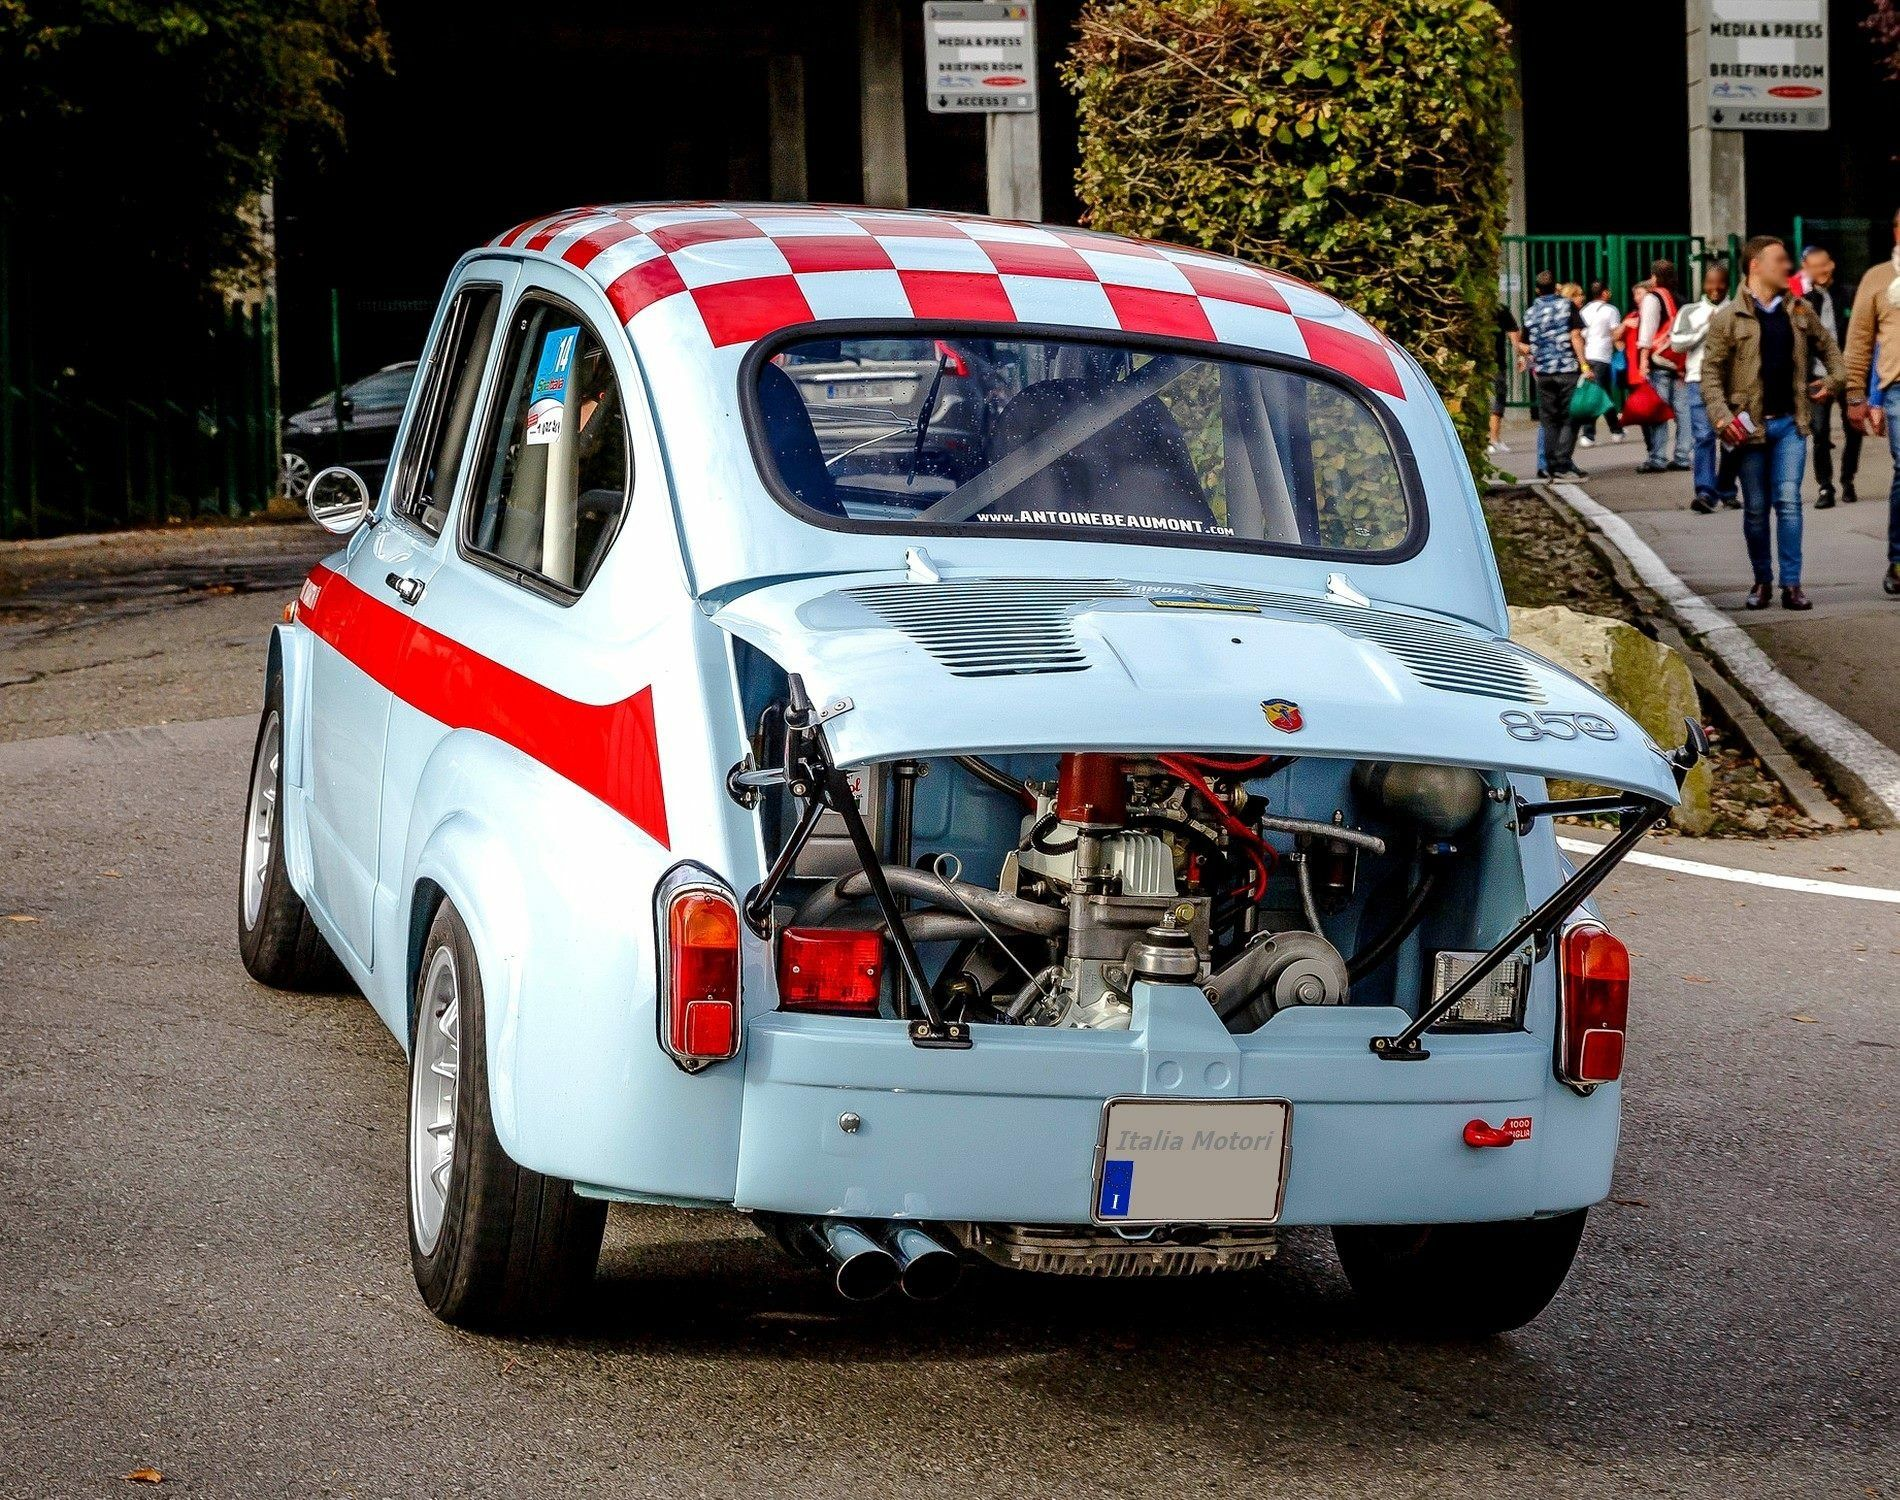 abarth stock photos alamy fiat photo at show images image a motor